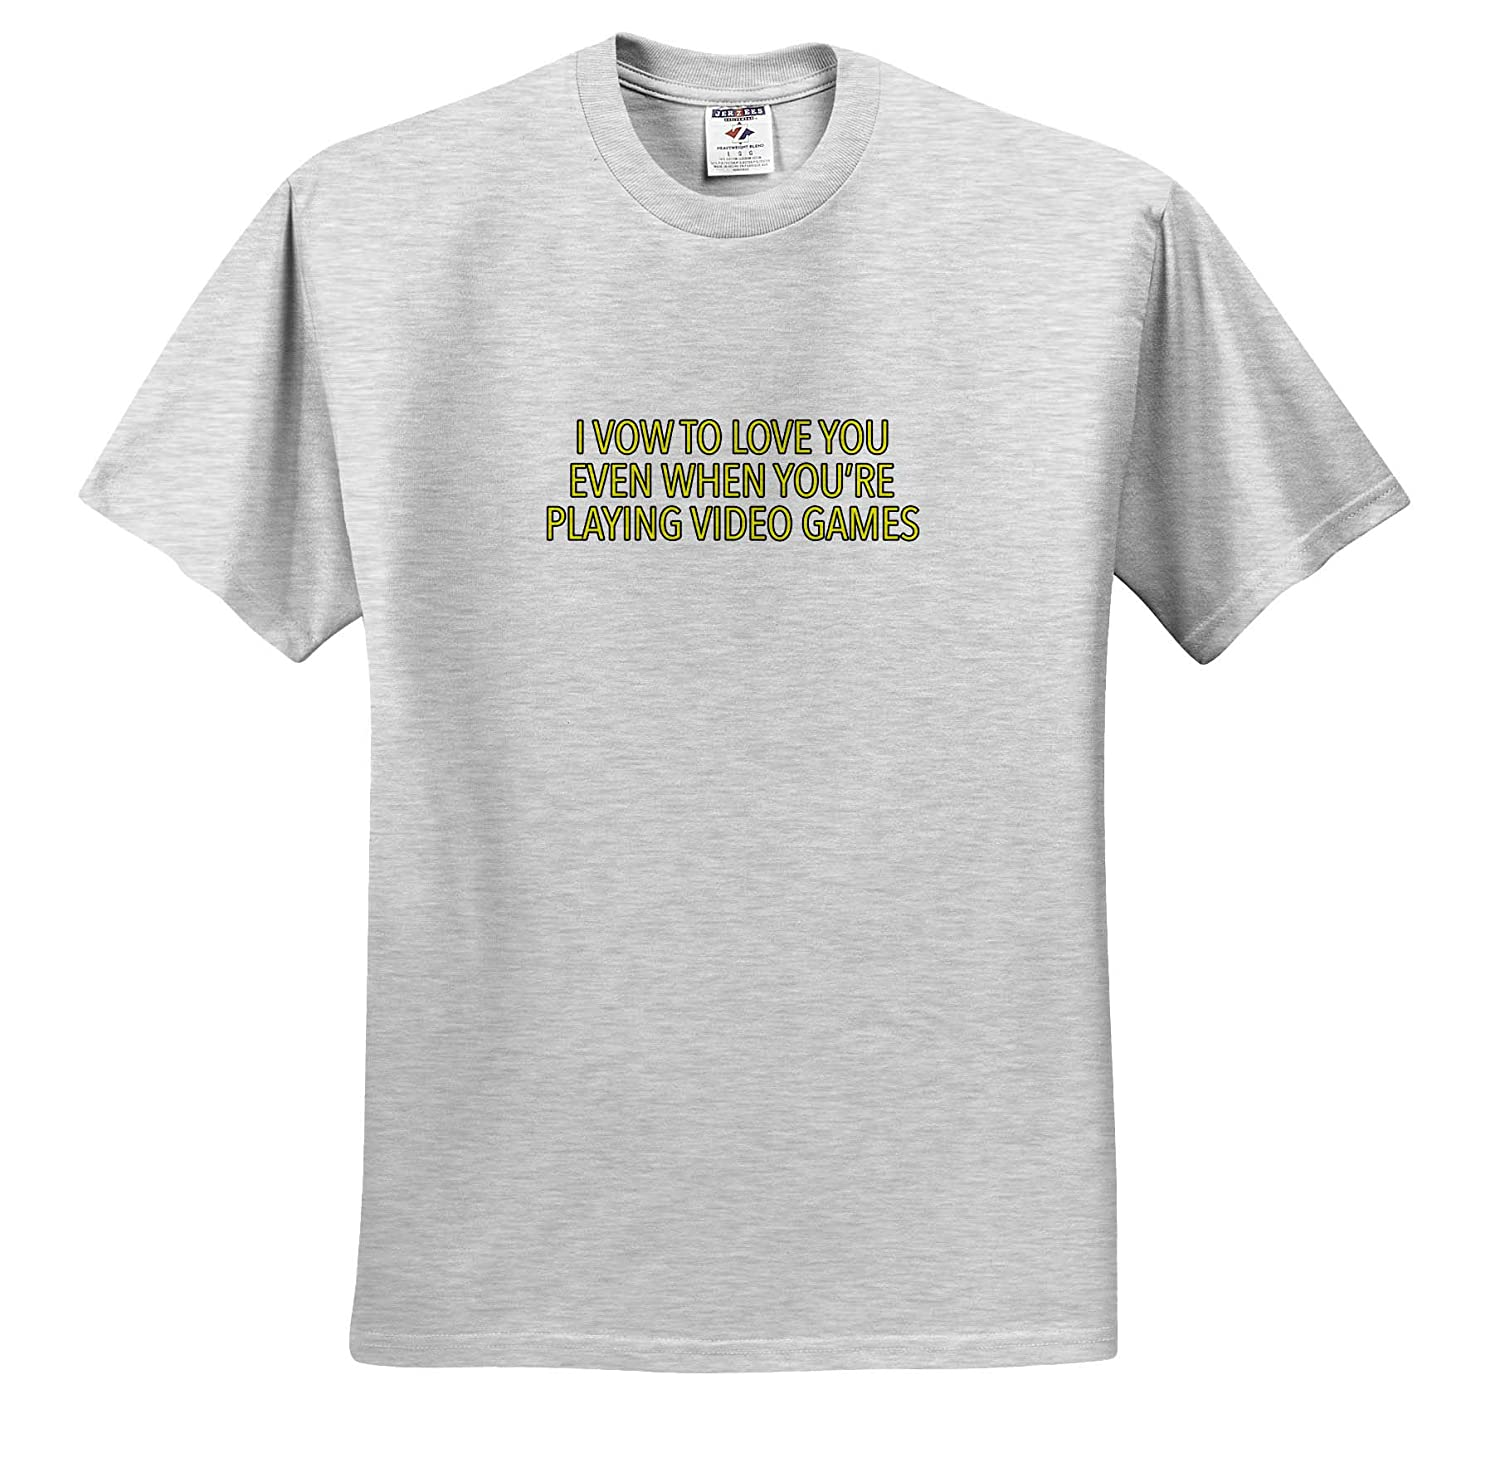 I Vow to Love You Even When Youre Playing Video Games Yellow 3dRose EvaDane Love Sayings ts/_315513 Adult T-Shirt XL